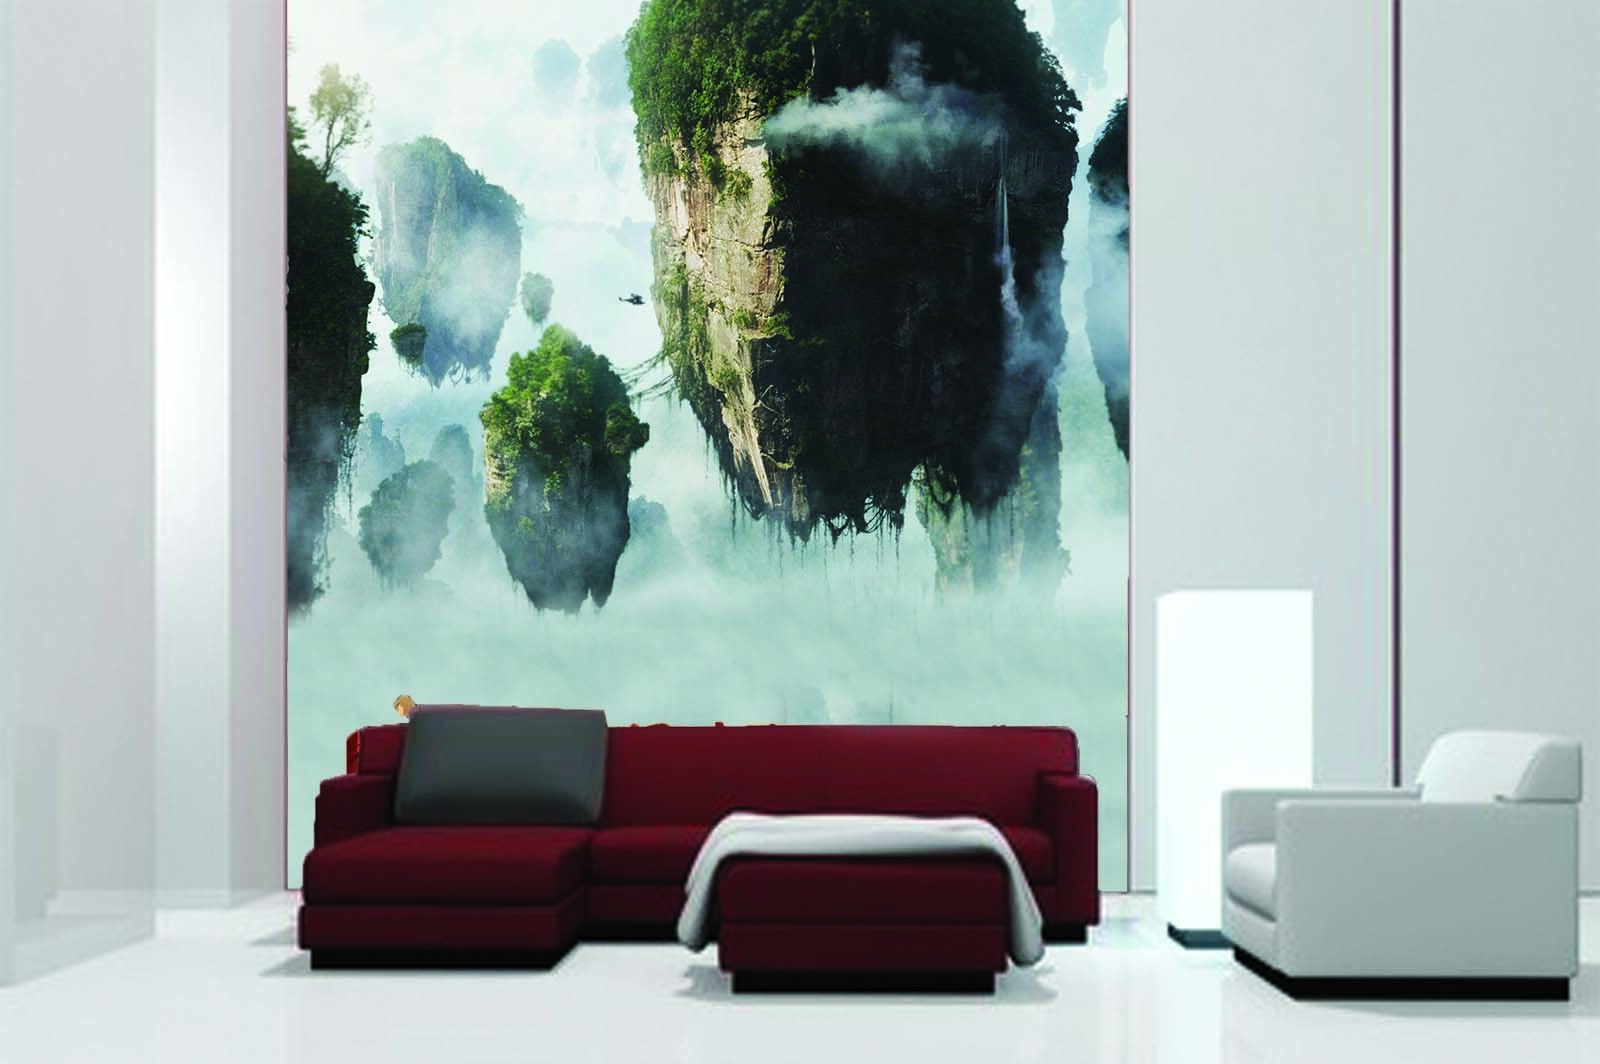 3D Hanging Sky Stone 46 Wall Paper Wall Print Decal Wall Deco Indoor Mural Carly